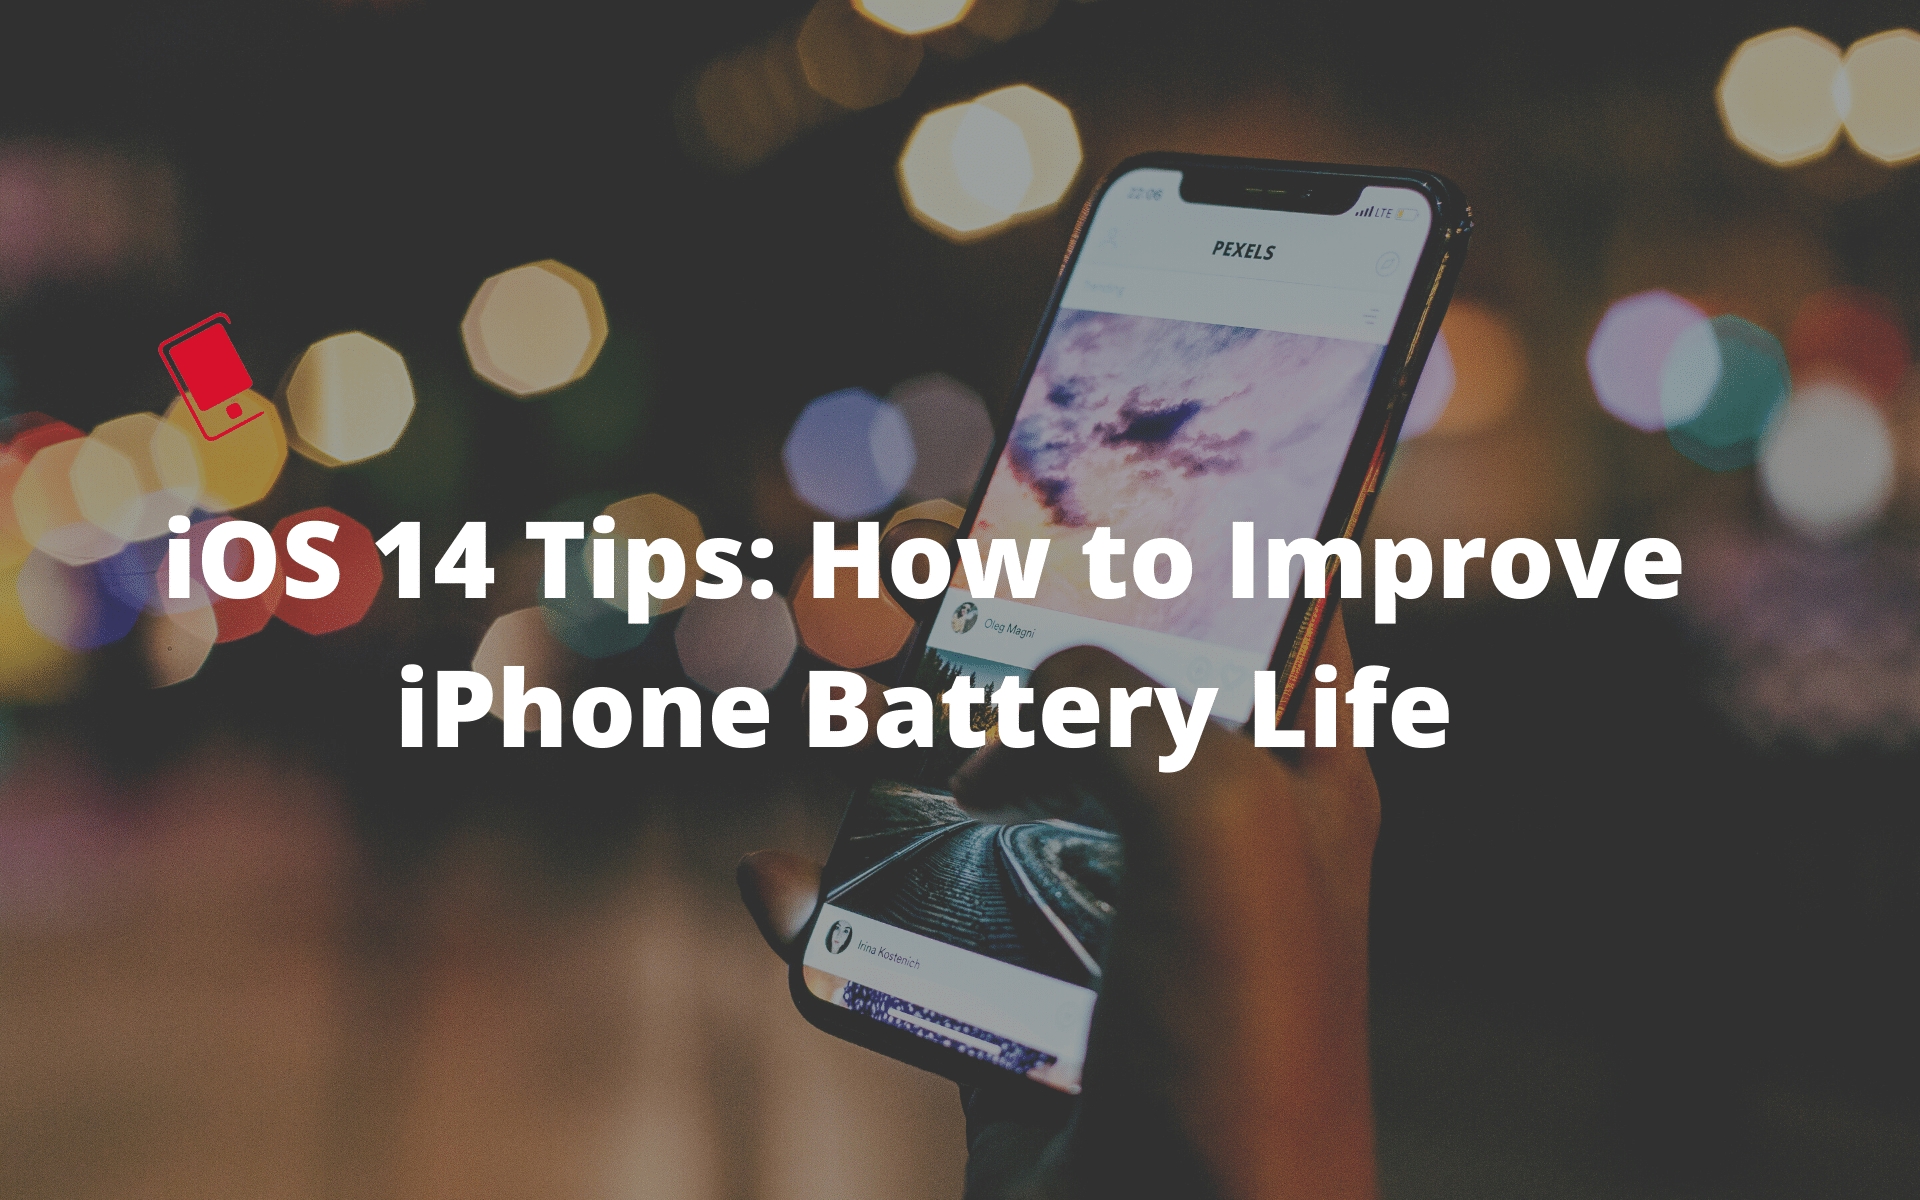 tips-to-improve-iphone-battery-life